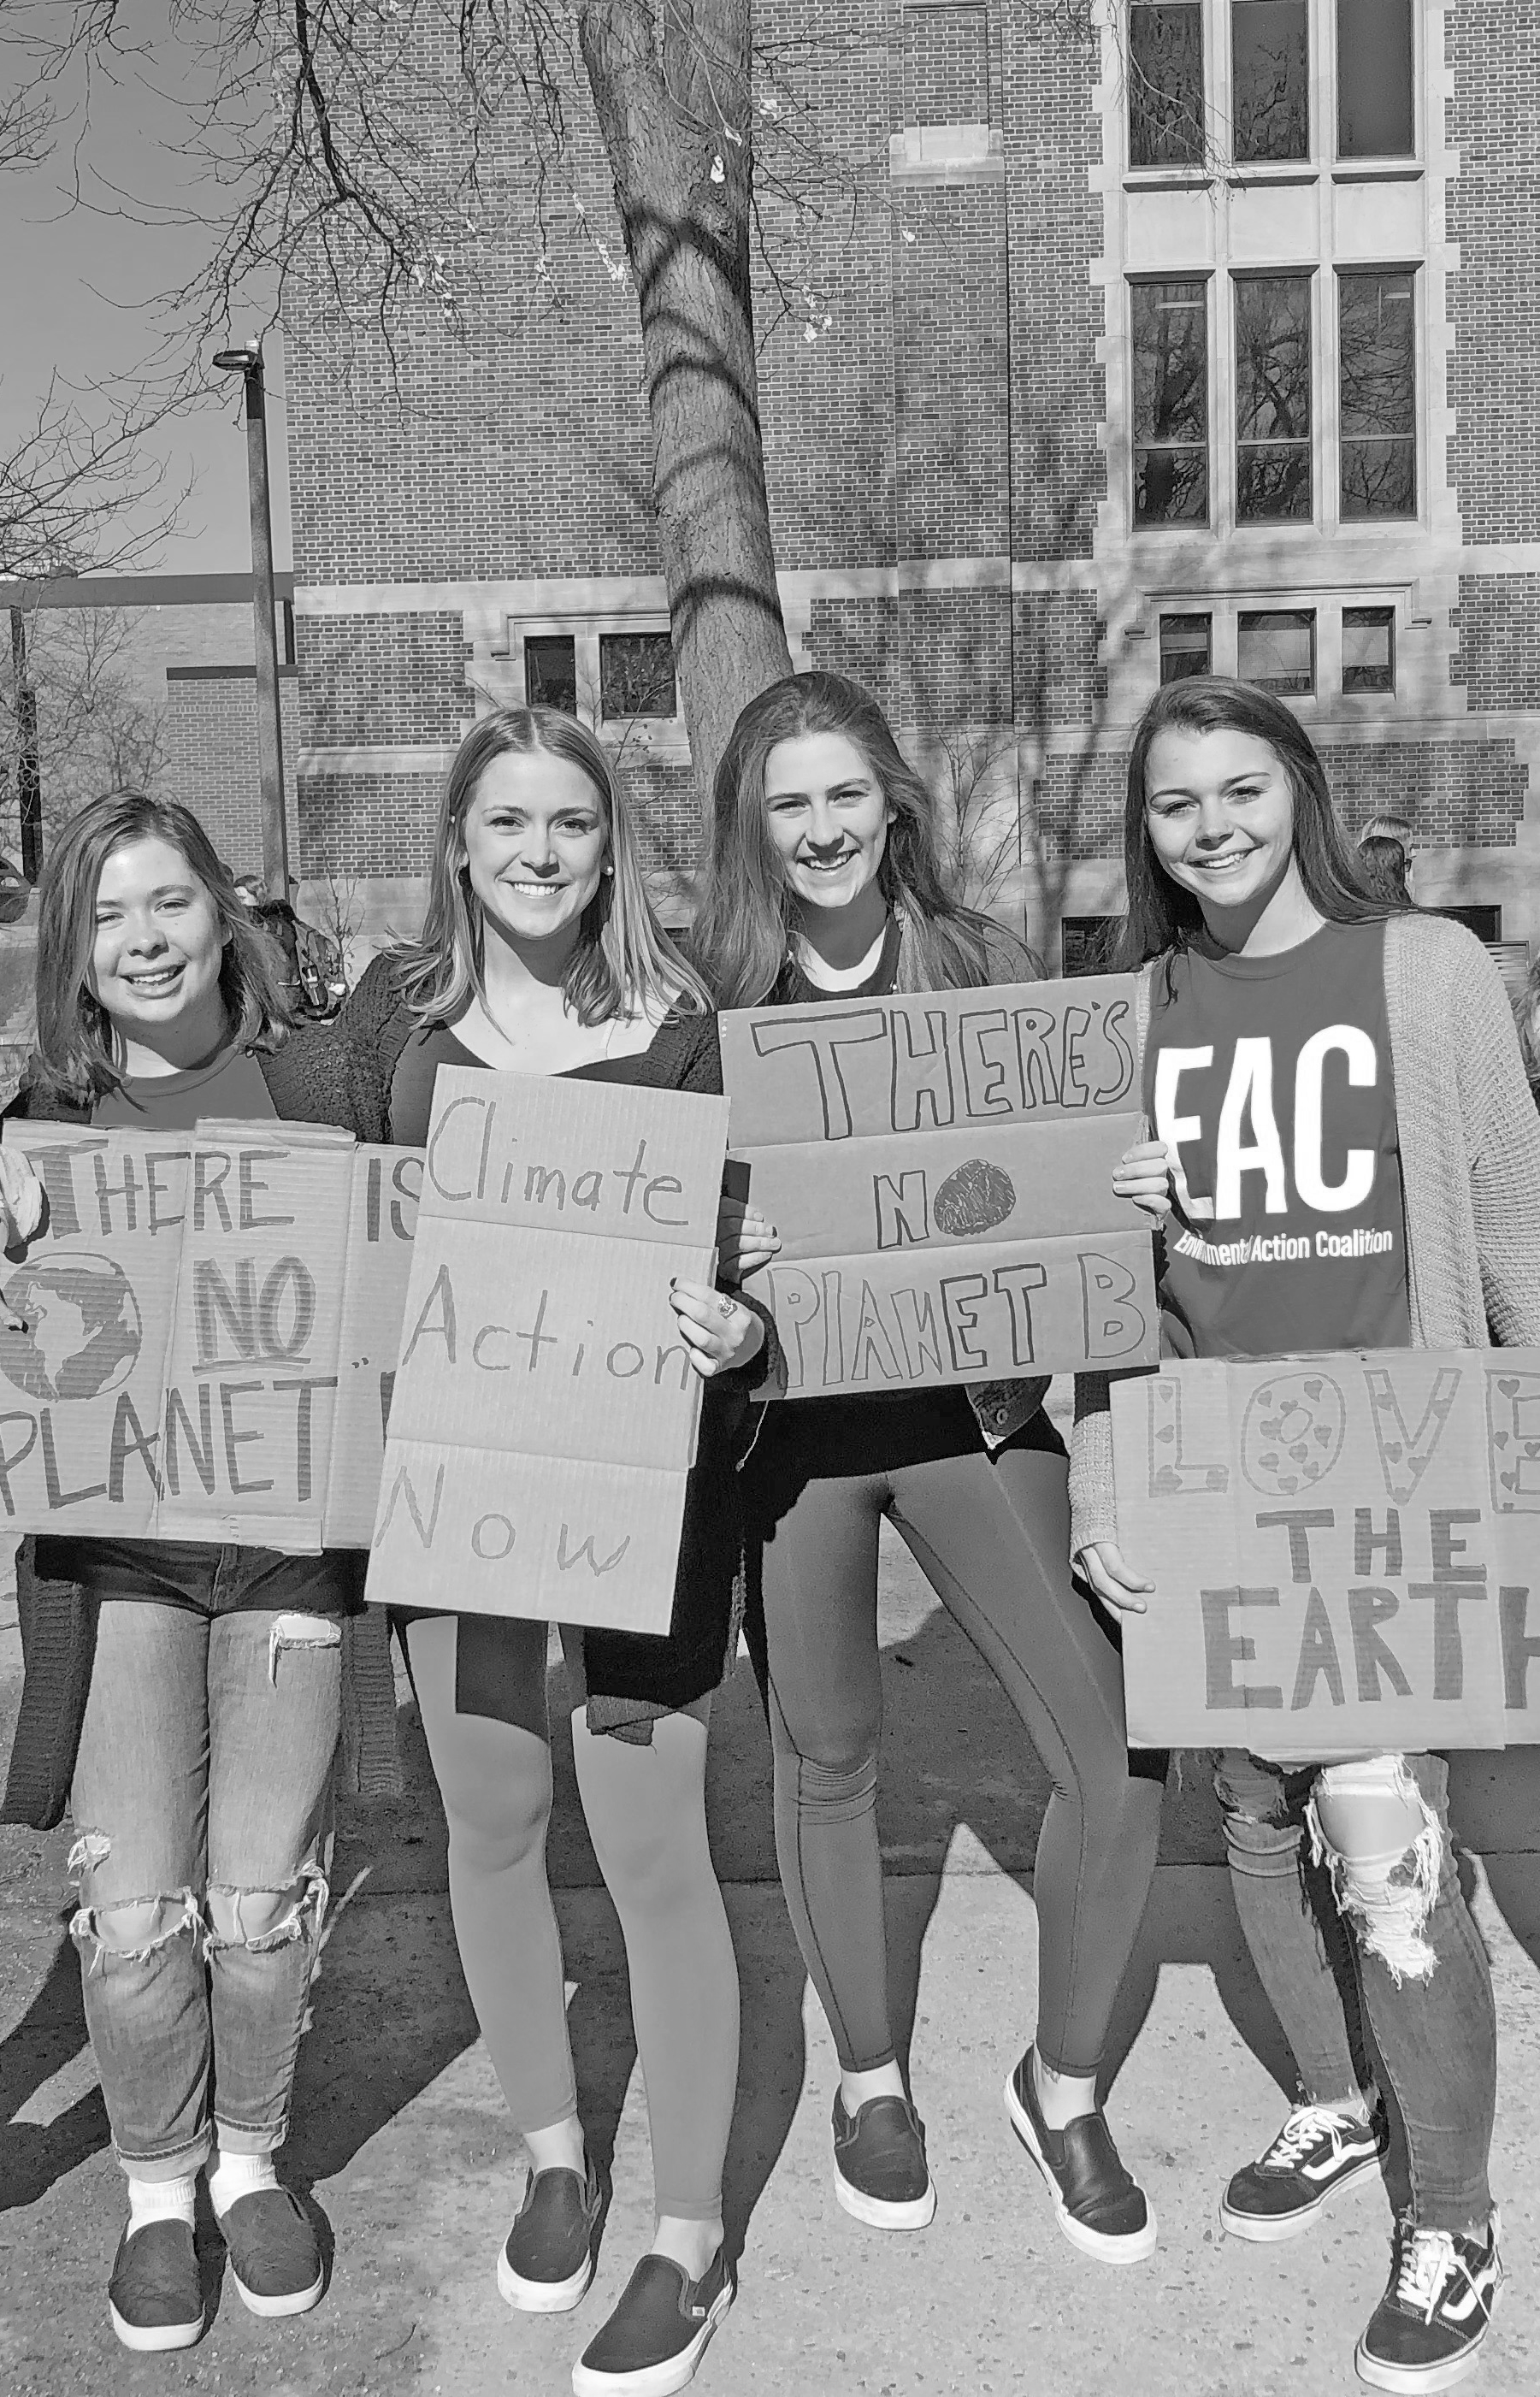 Gusties protesting for climate action at Groundswell.